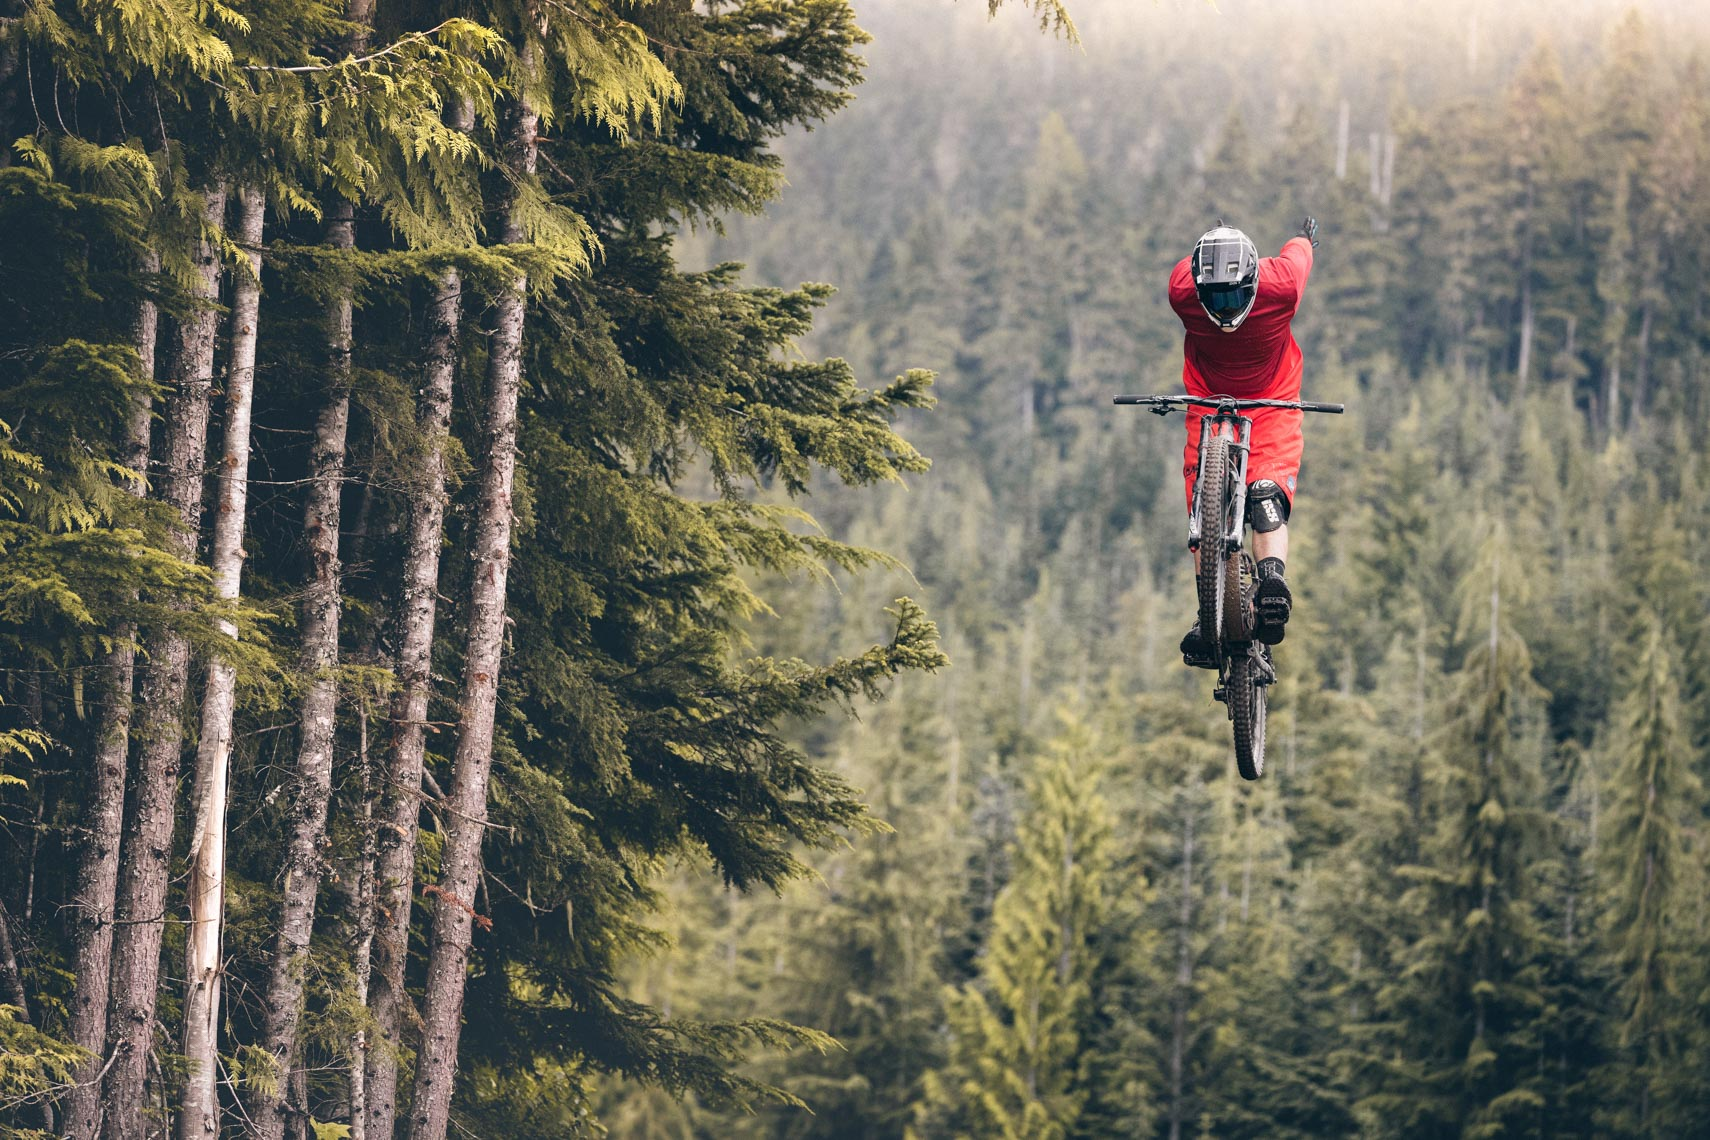 No-hands mountain bike jump in the Whistler Bike Park